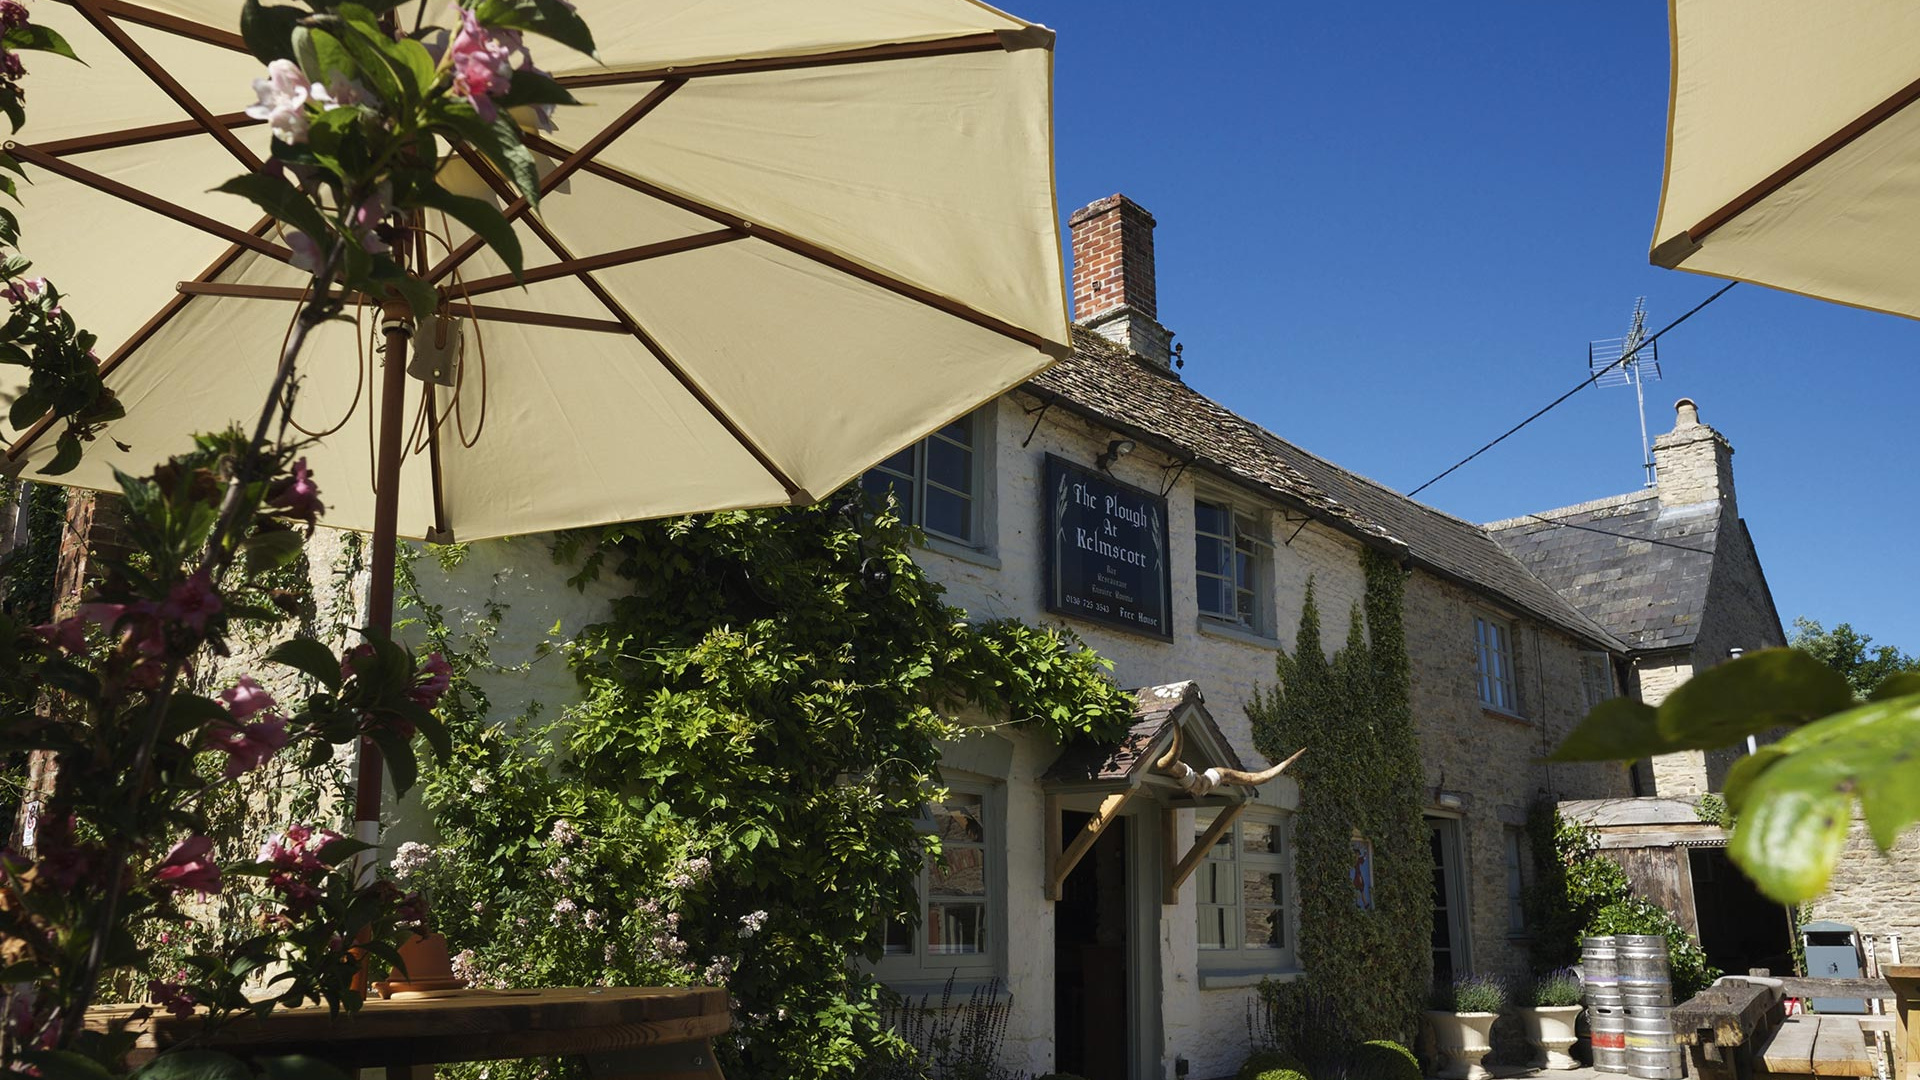 exterior of the Plough at Kelmscott in the Cotswolds